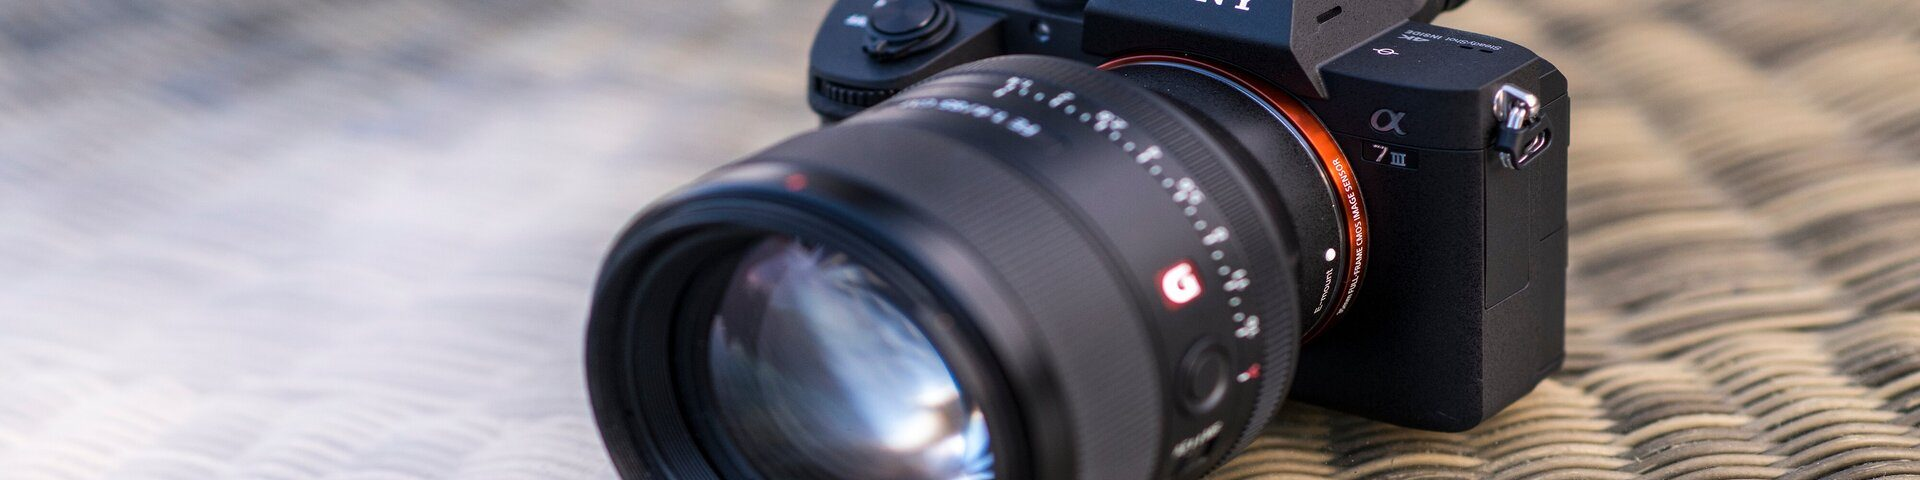 Best Travel Cameras For Any Budget